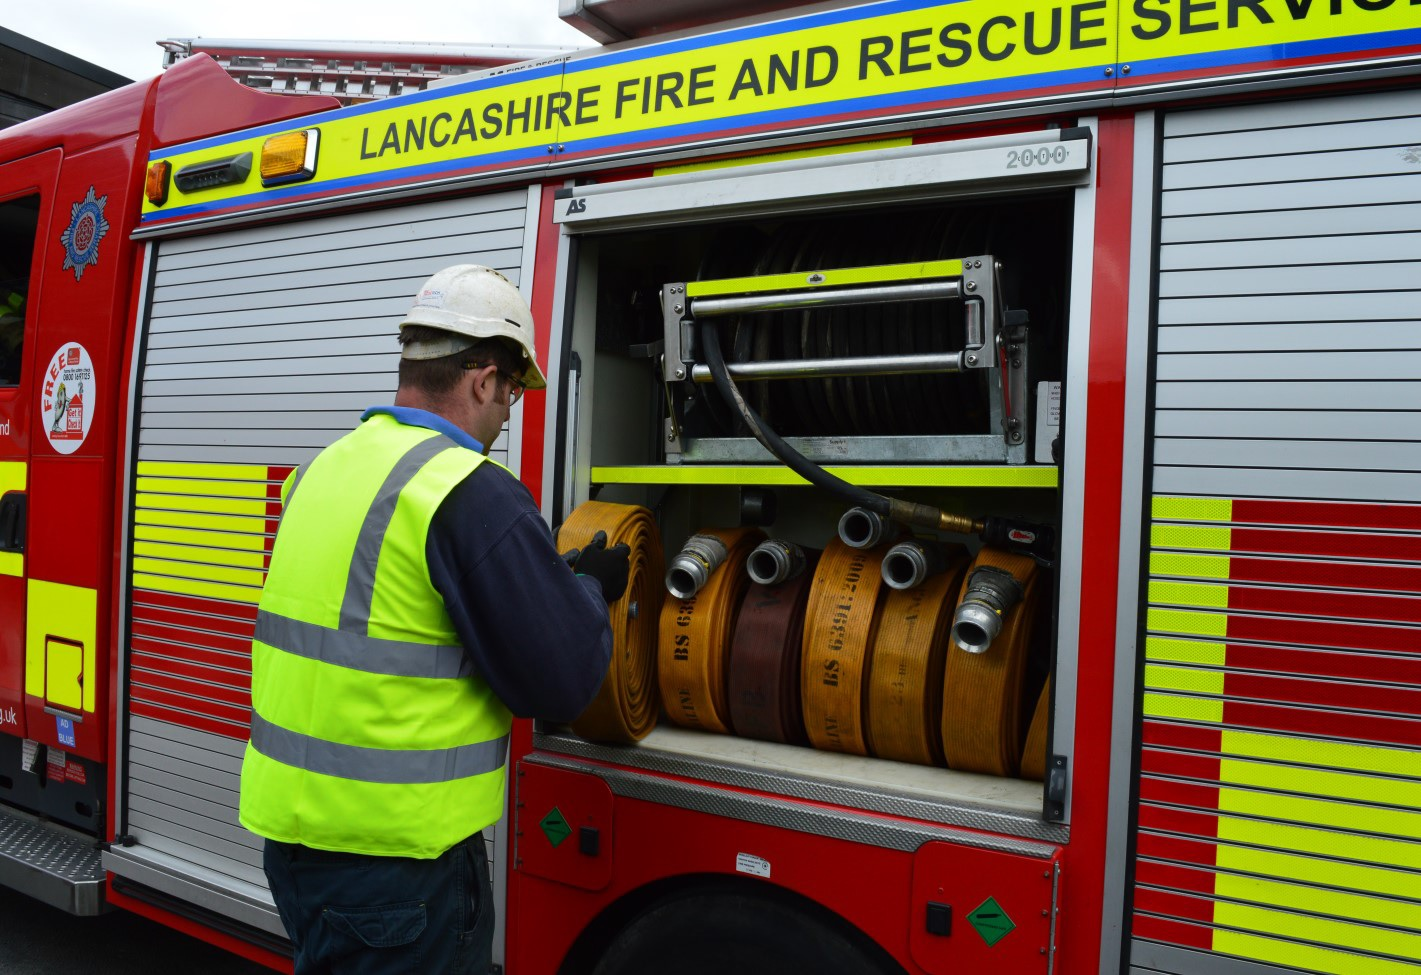 Re-stowing of hoses